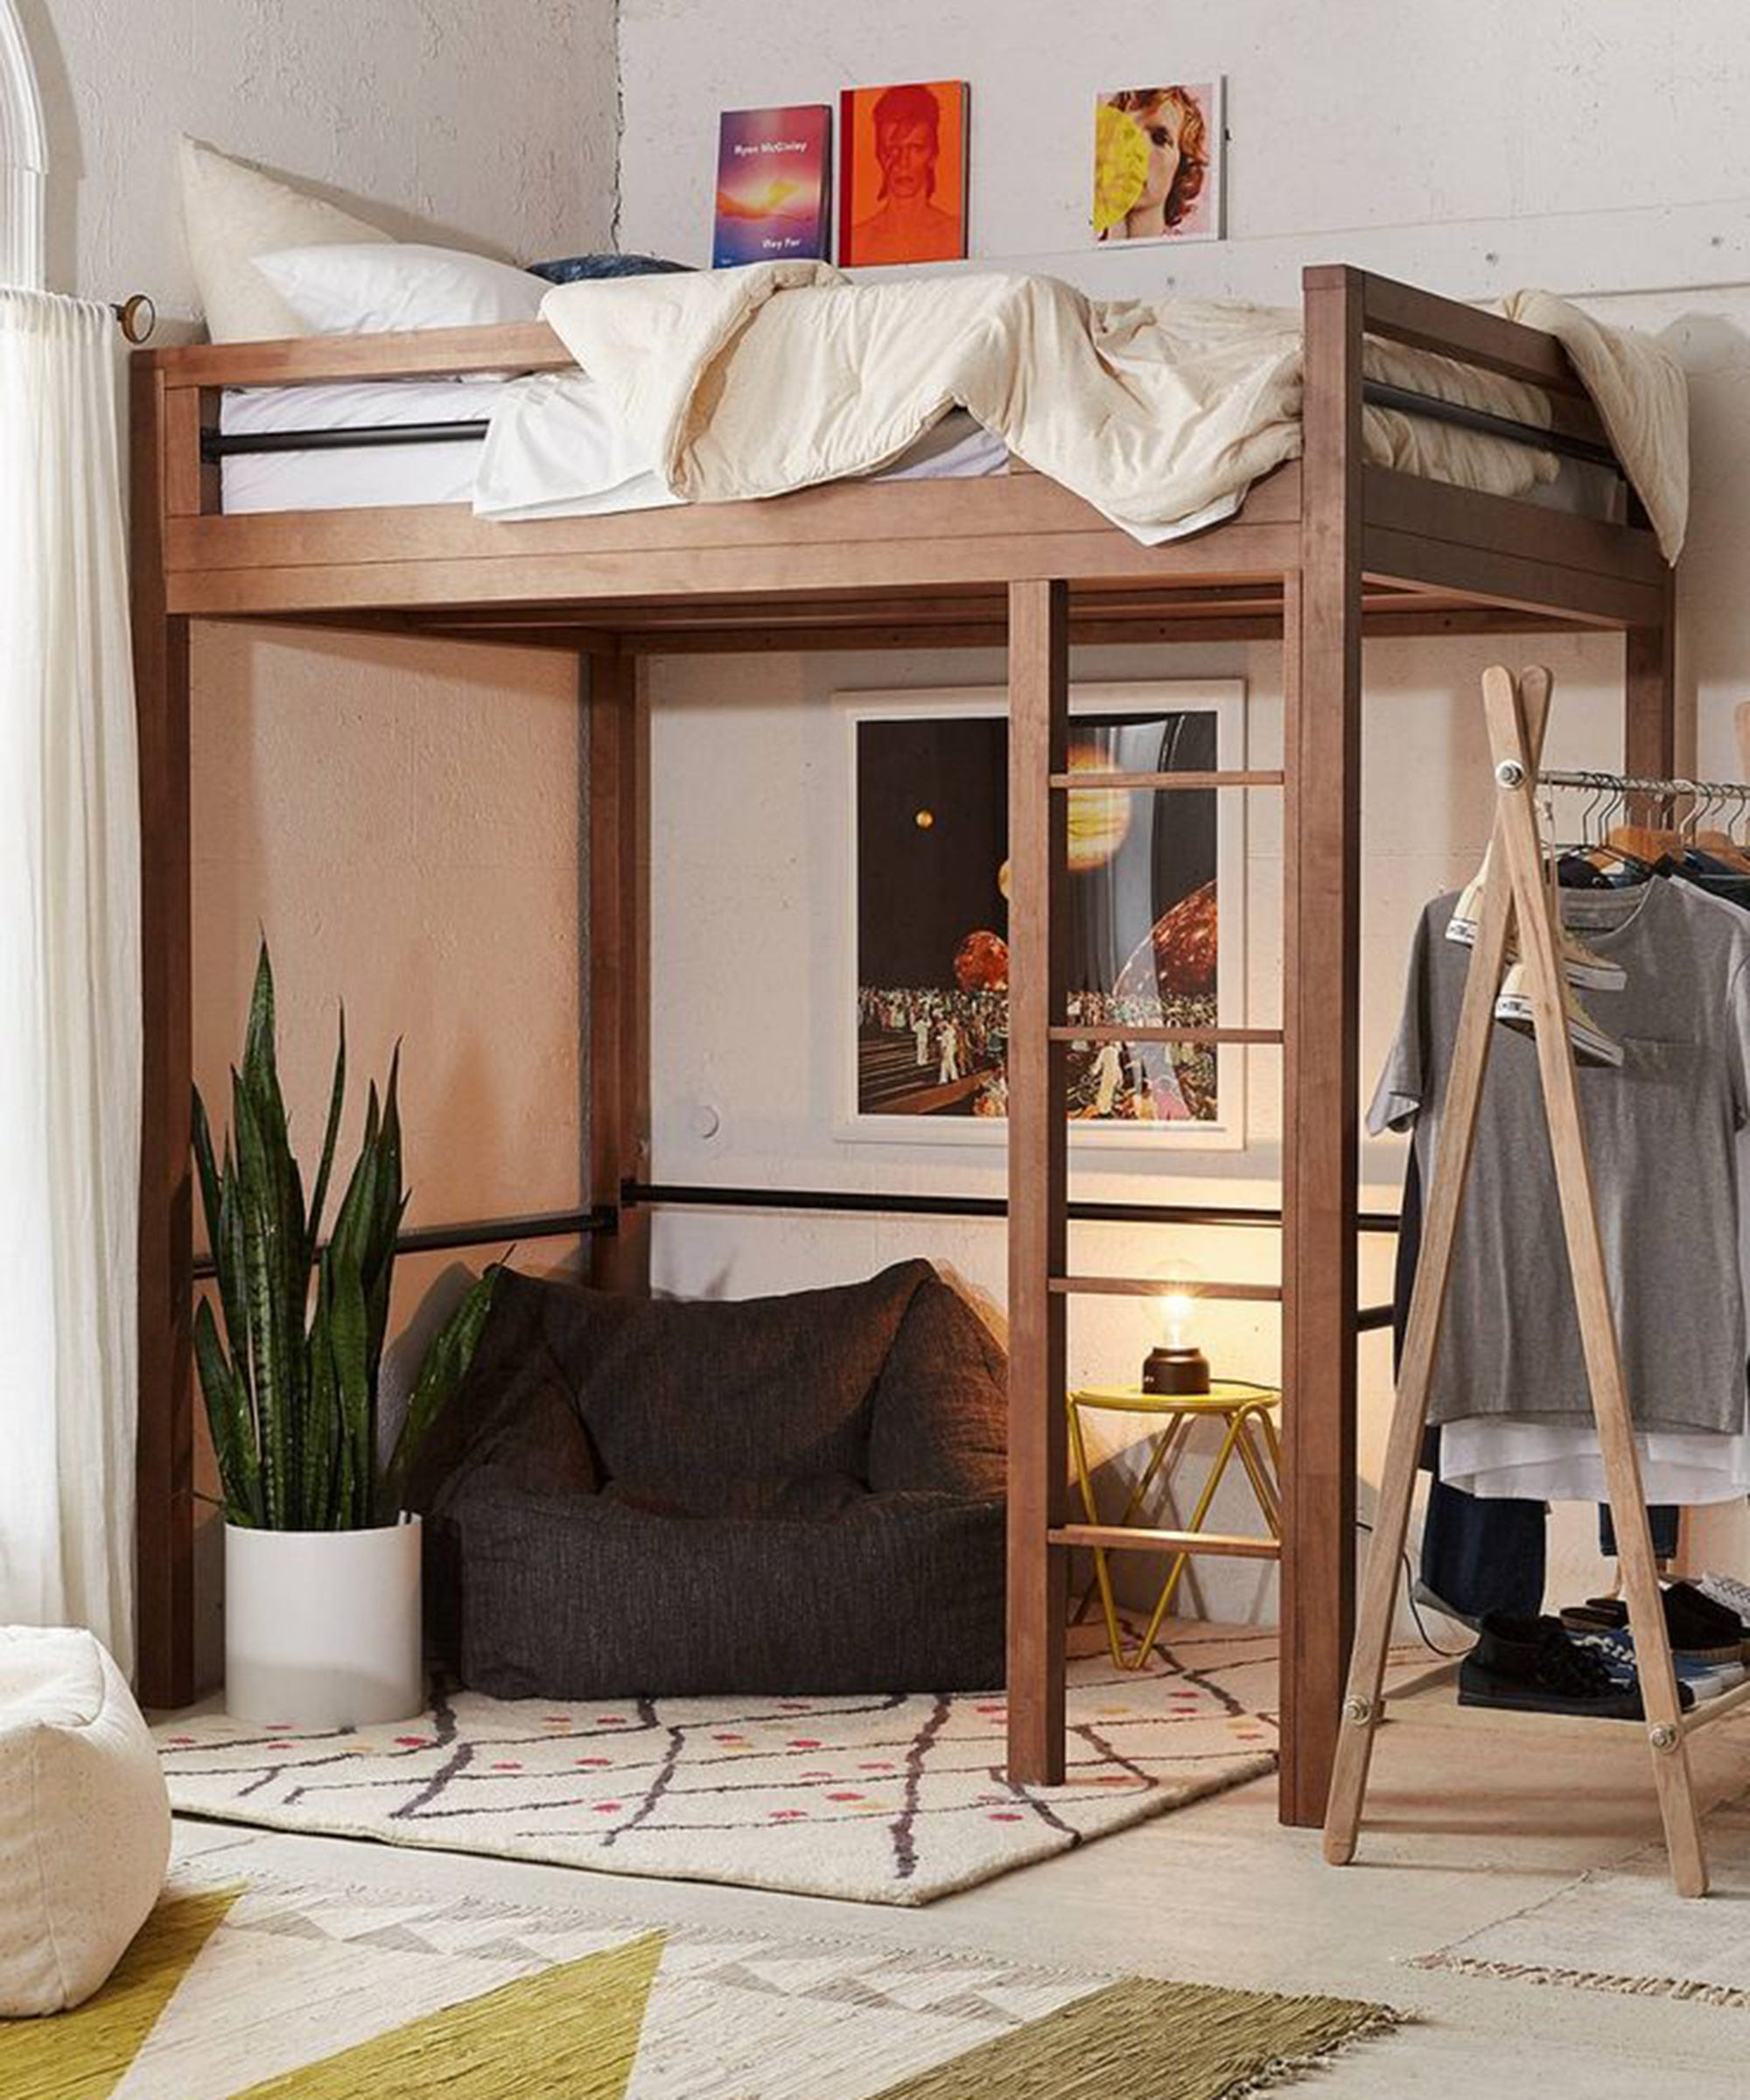 Picture of: Best Lofted Beds For Adults Queen Size Loft Bed Ideas